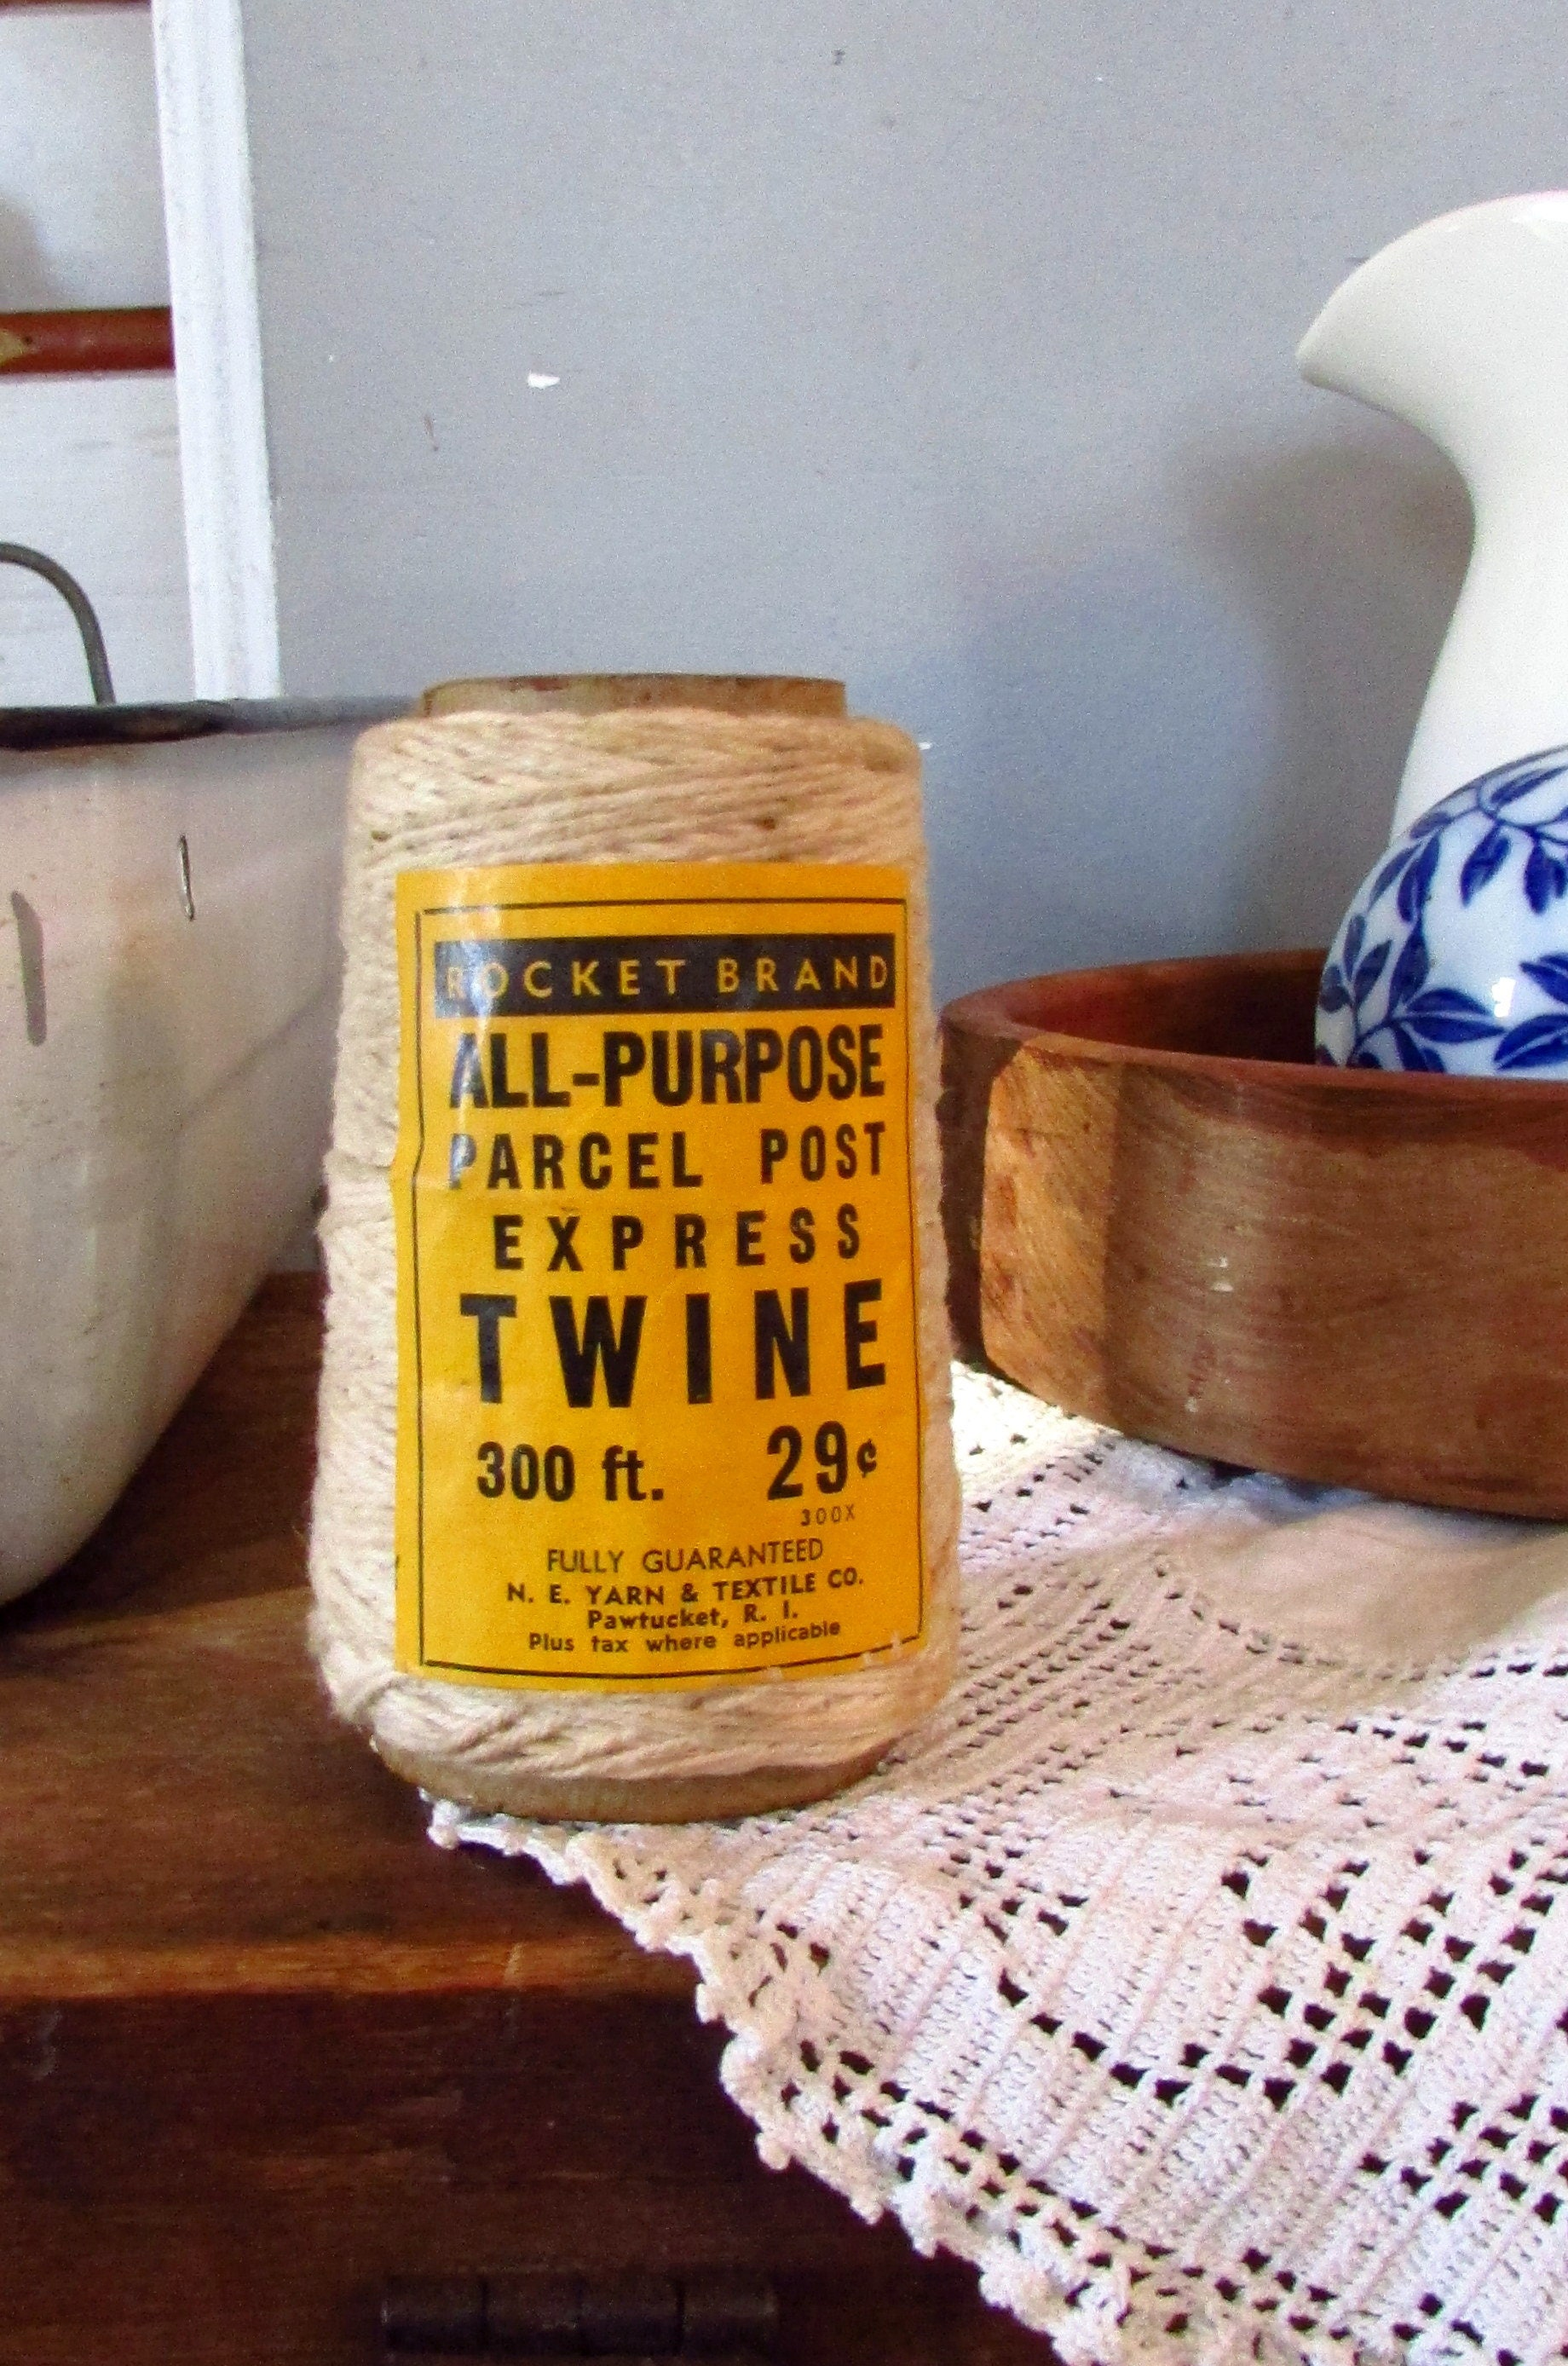 Vintage Twine for Parcel Post Express Twine Spool - Label Package with  Yellow Black text Rocket Brand All Purpose, Old Twine for packaging